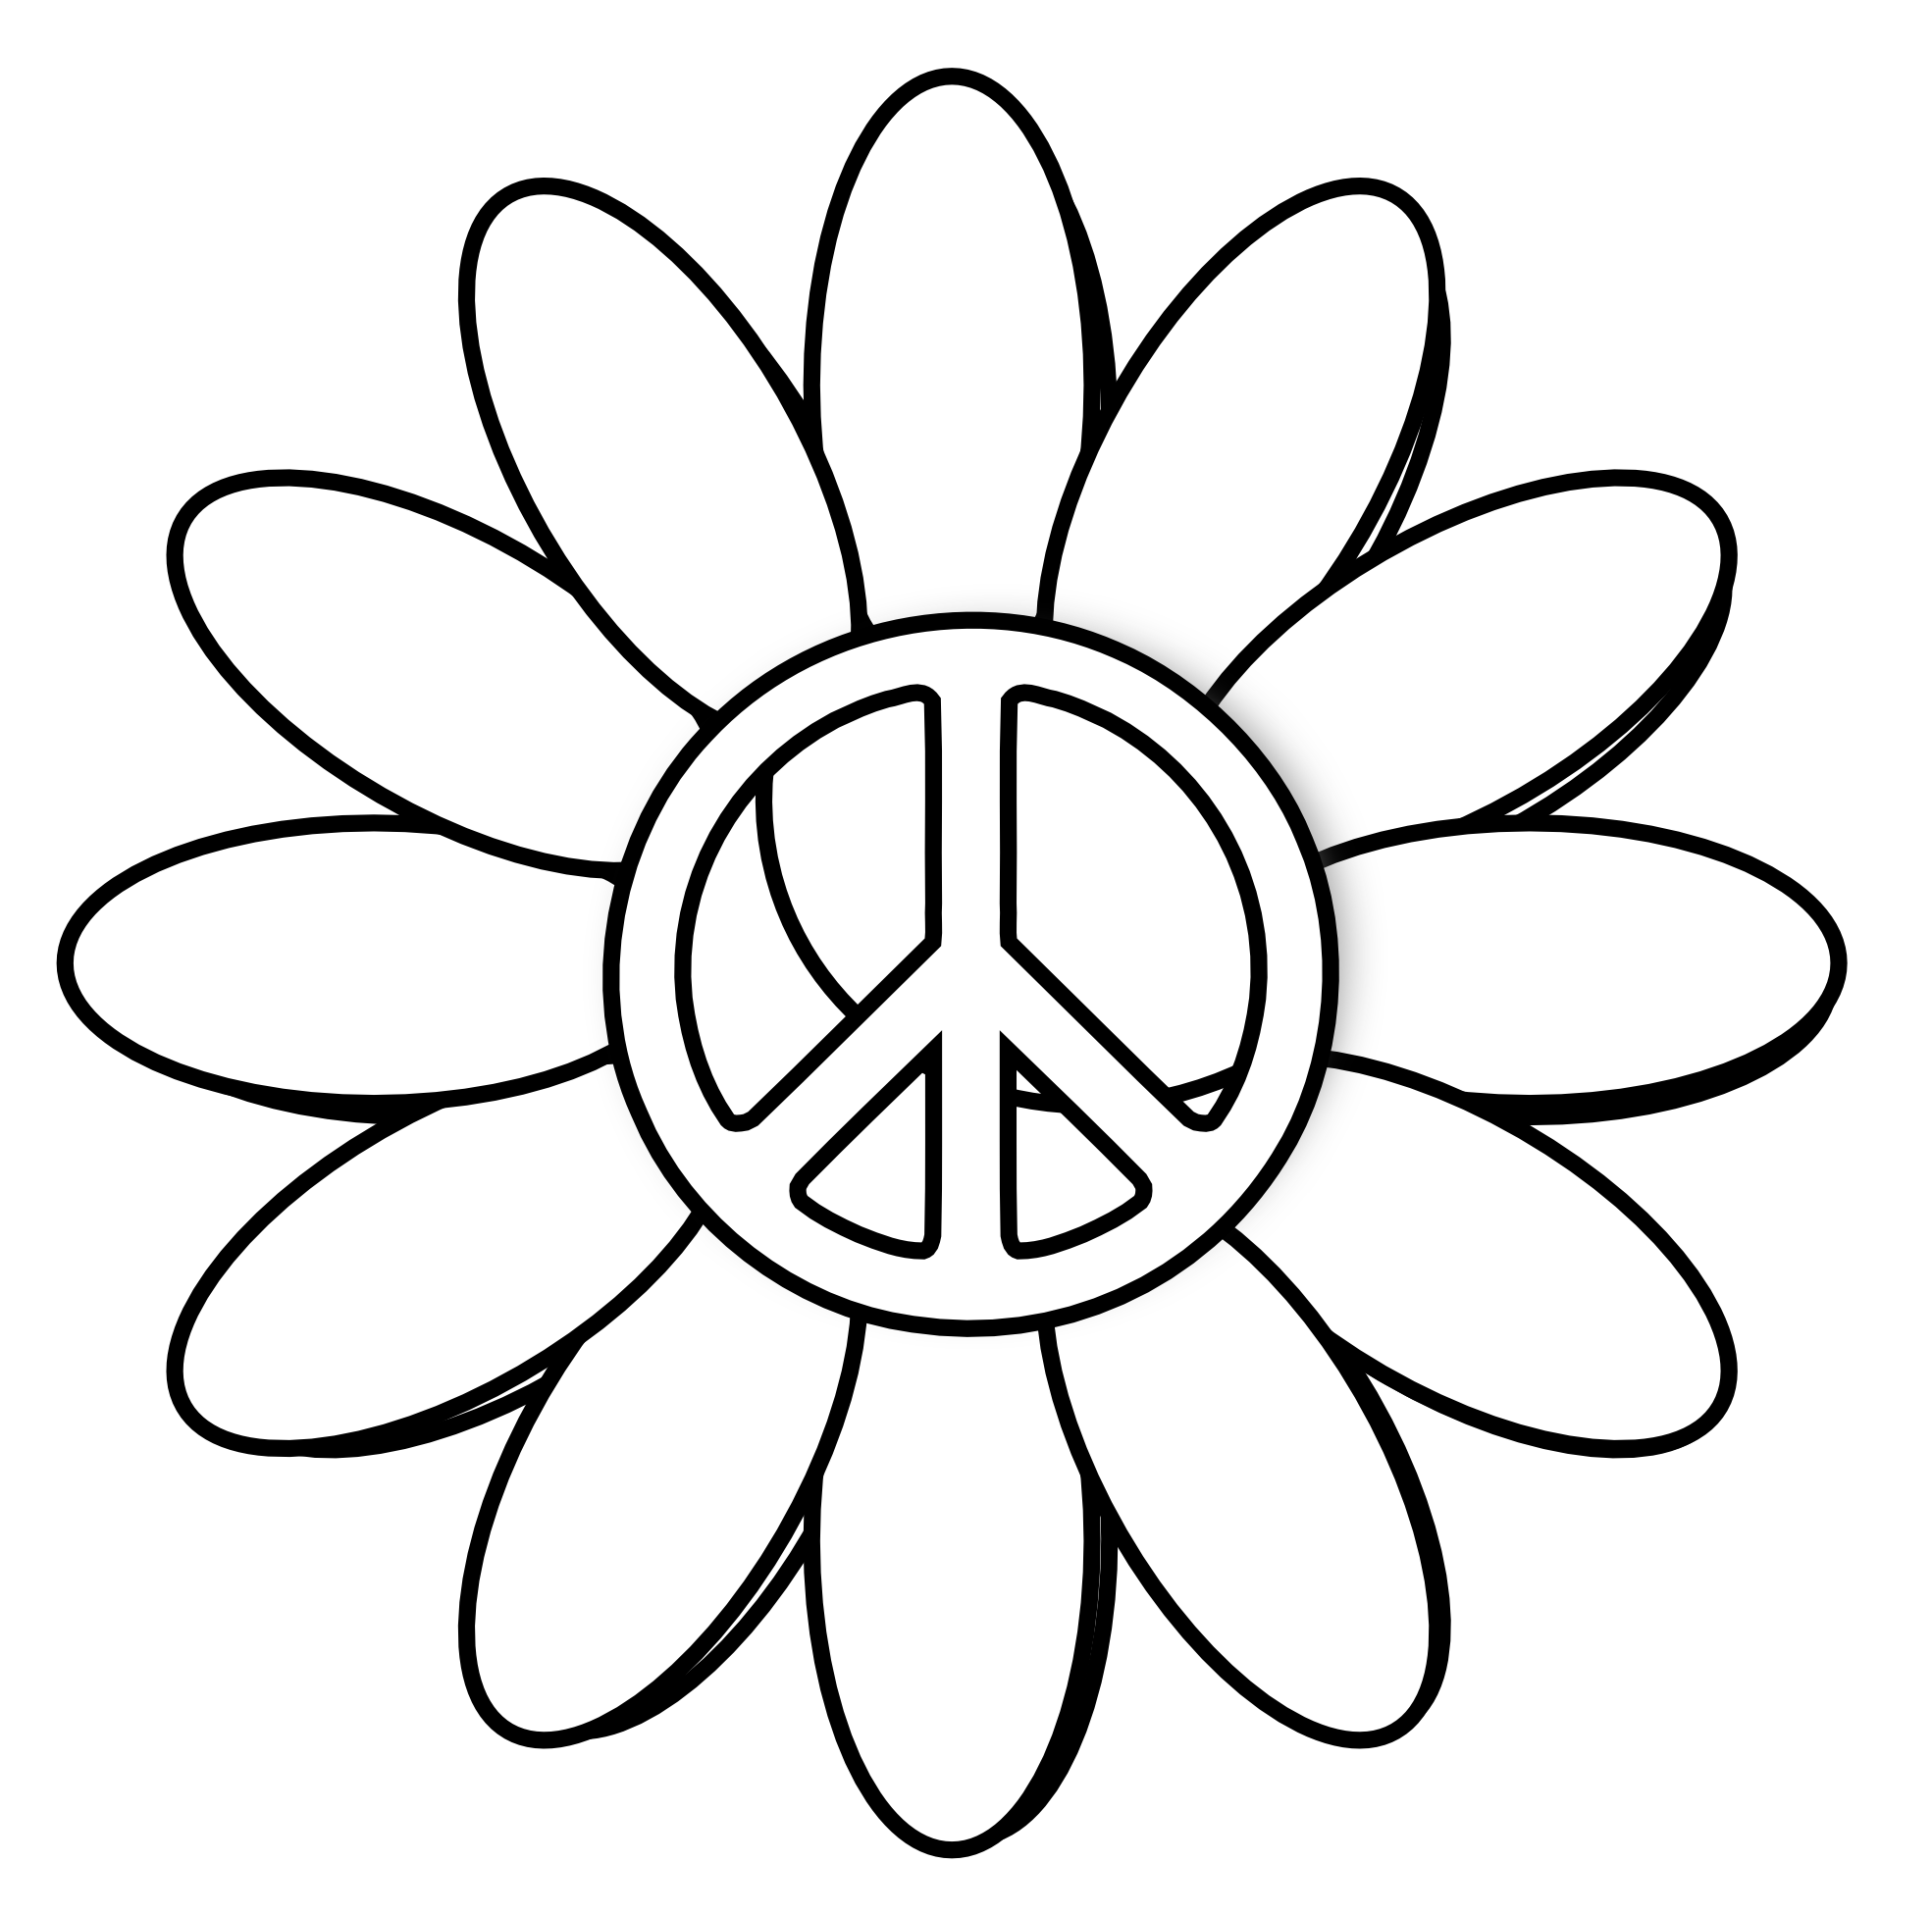 Similiar Peace Flower Clip Art Keywords.